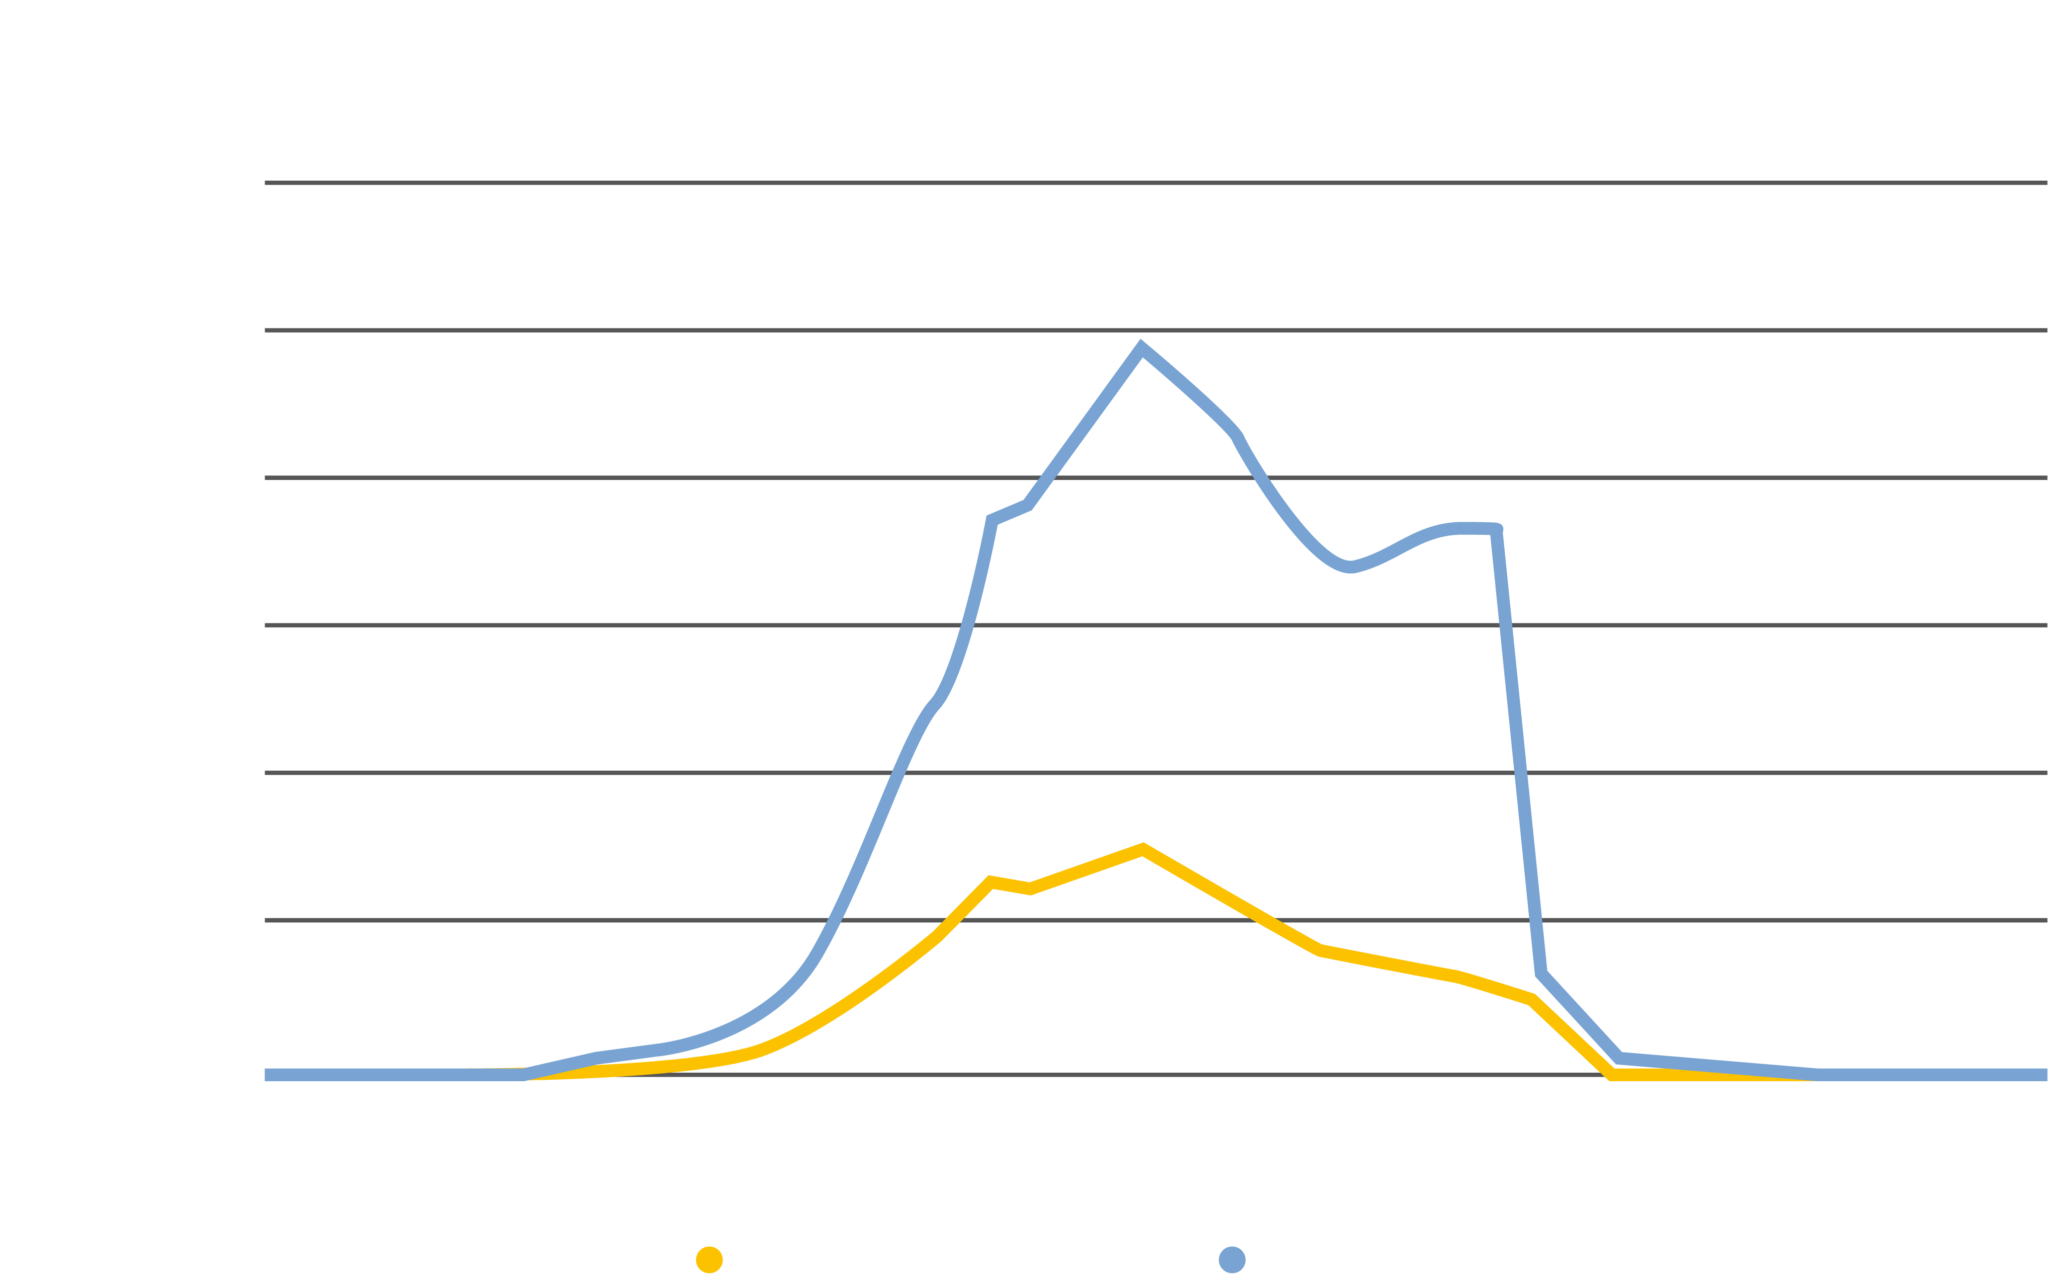 Traditional VVX recovery does not include energy recovery from kitchen exhaust air, only the non polluted air from general areas.